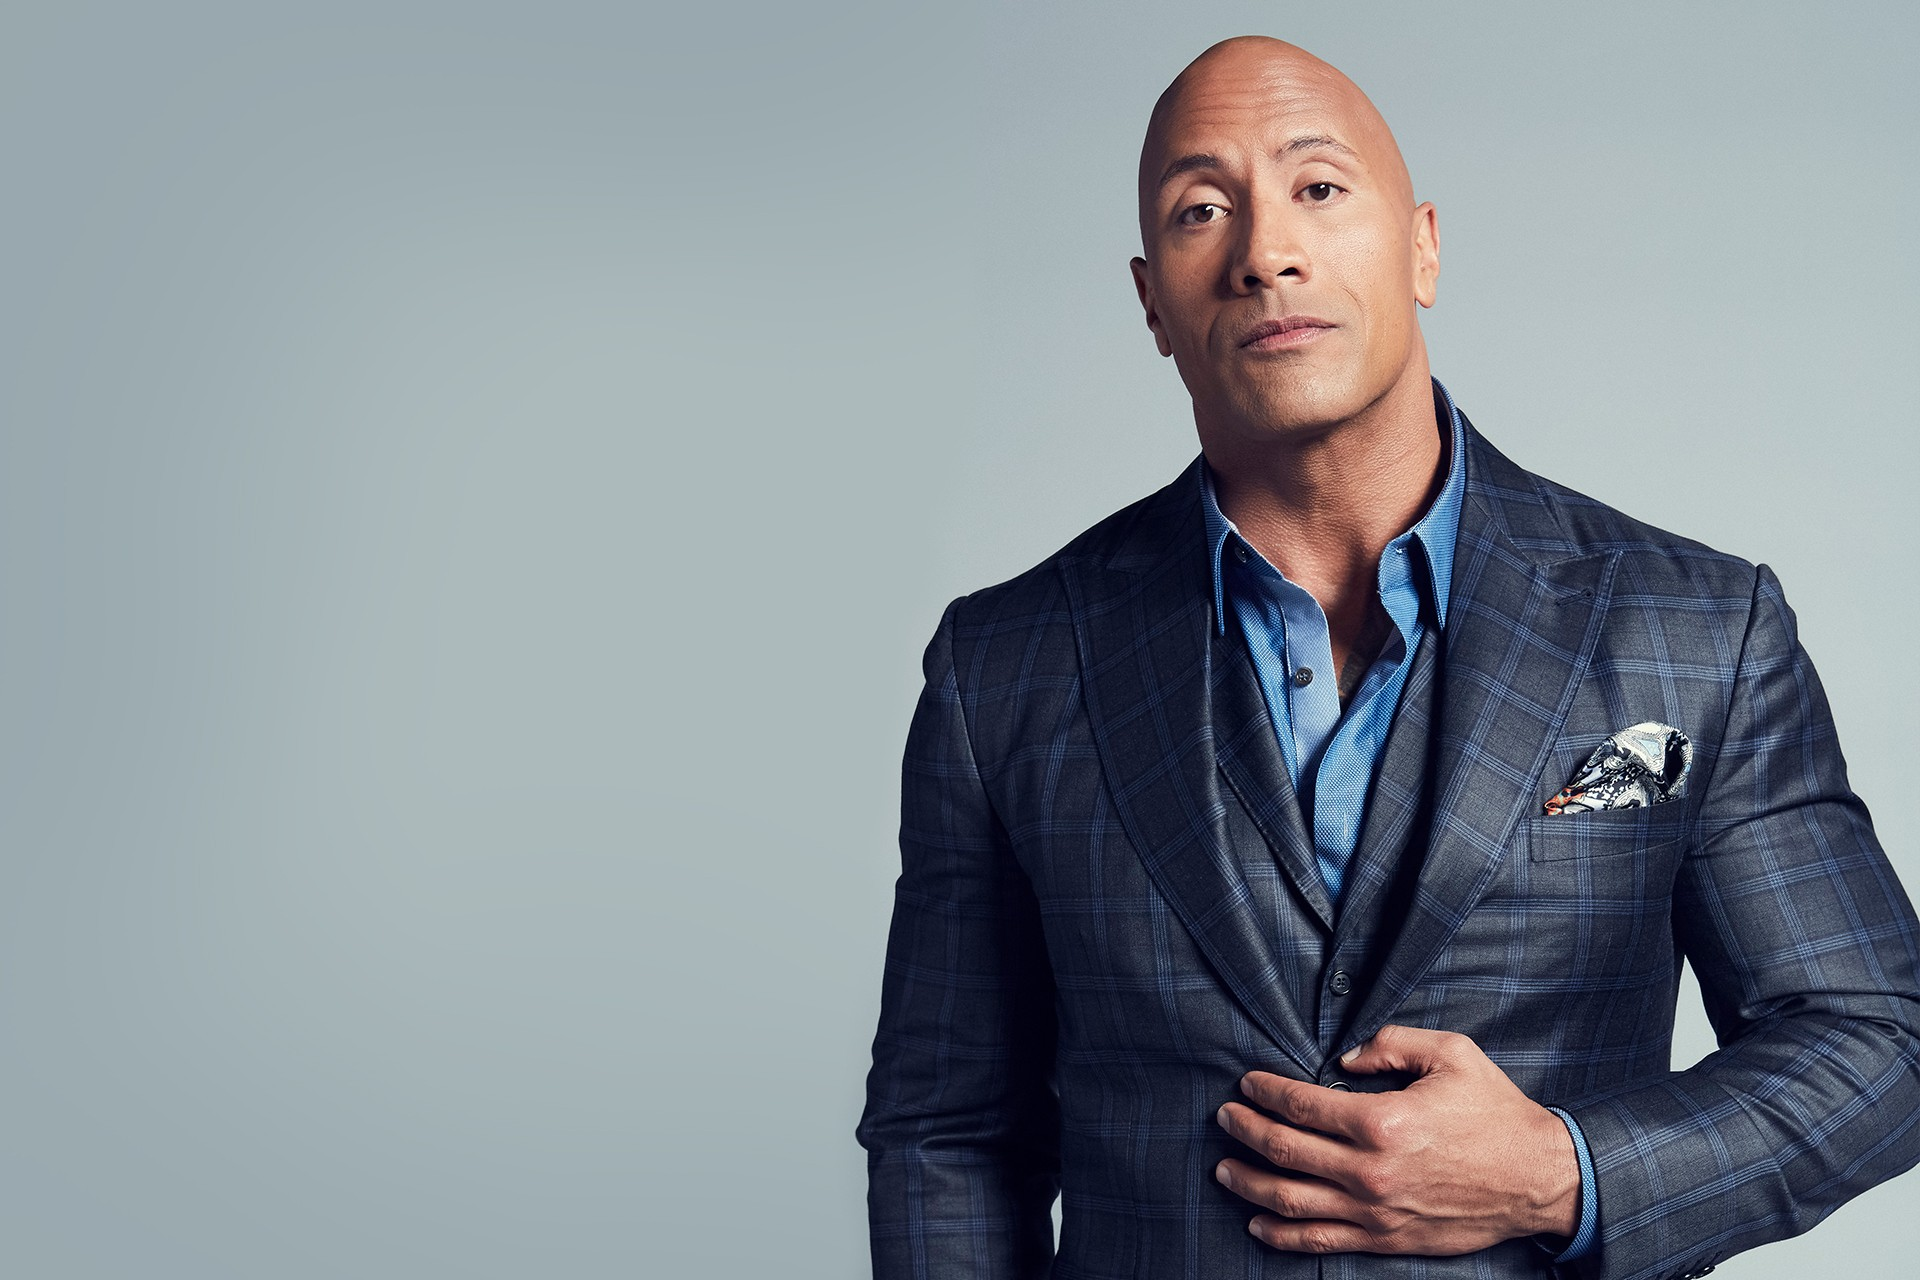 WWE: The Rock to compete at WrestleMania this year? - The Rock